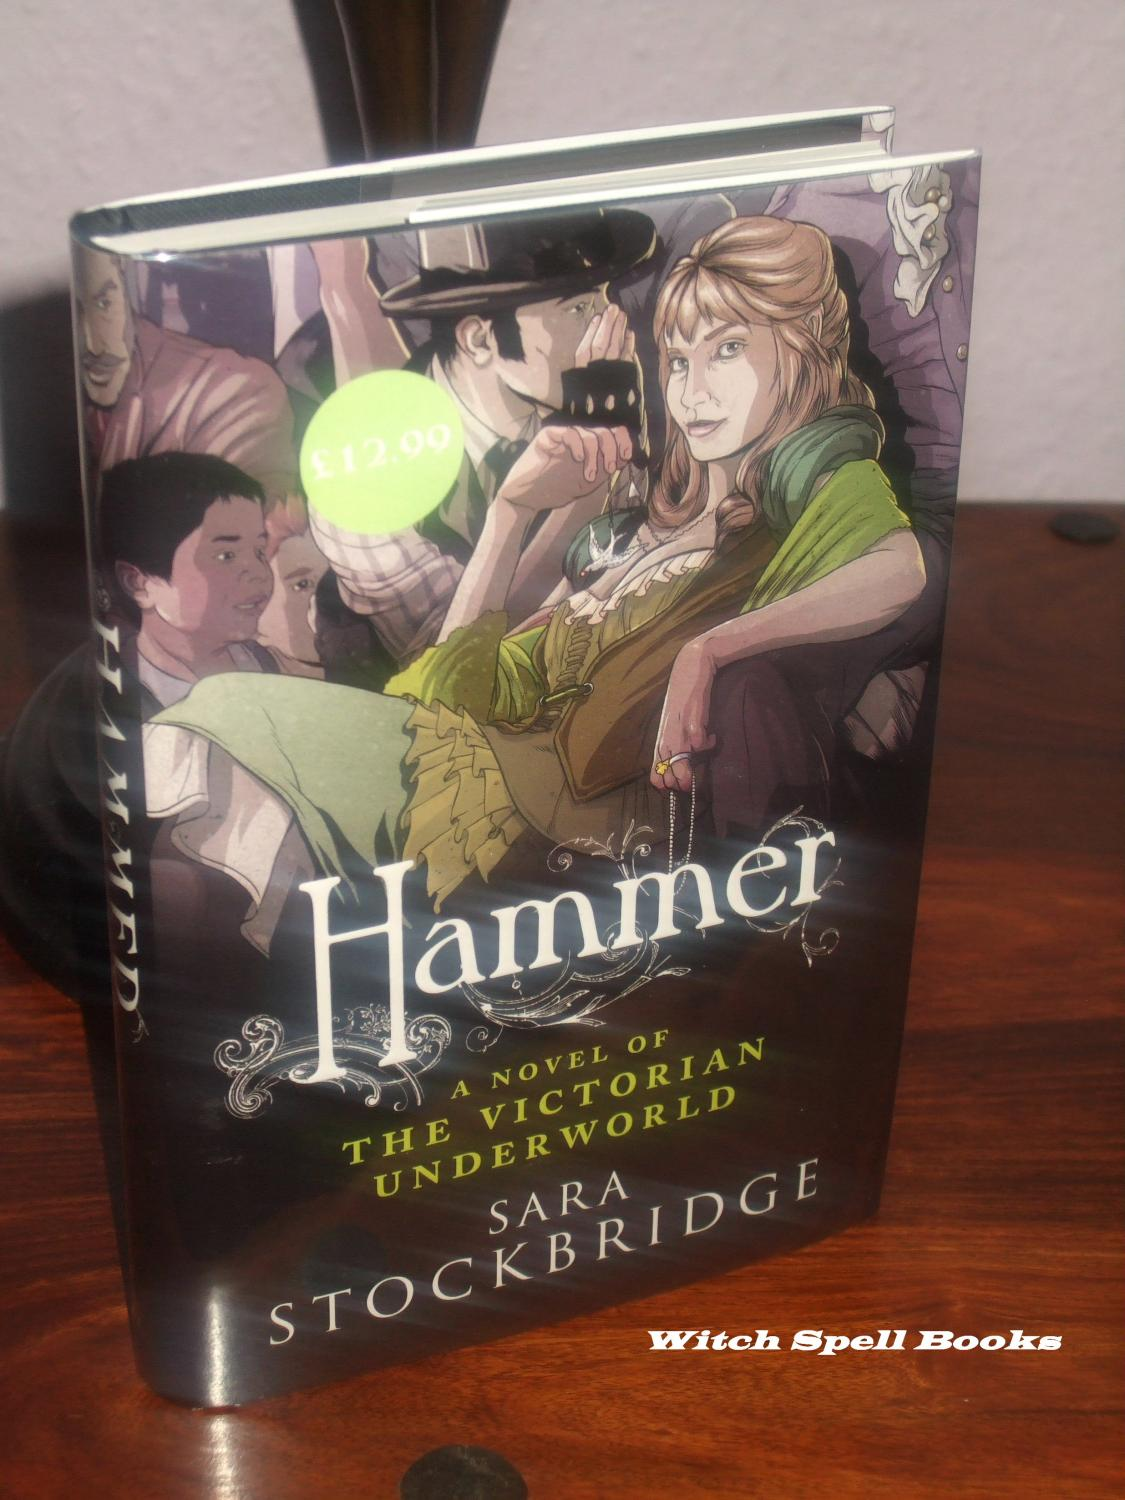 Hammer : +++FOR THE DISCERNING COLLECTOR A BEAUTIFUL UK SIGNED,DATED AND WITH A WRITTEN QUOTE FROM THE BOOK ( LINED ), FIRST EDITION, FIRST PRINT HARDBACK+++ - Stockbridge, Sara